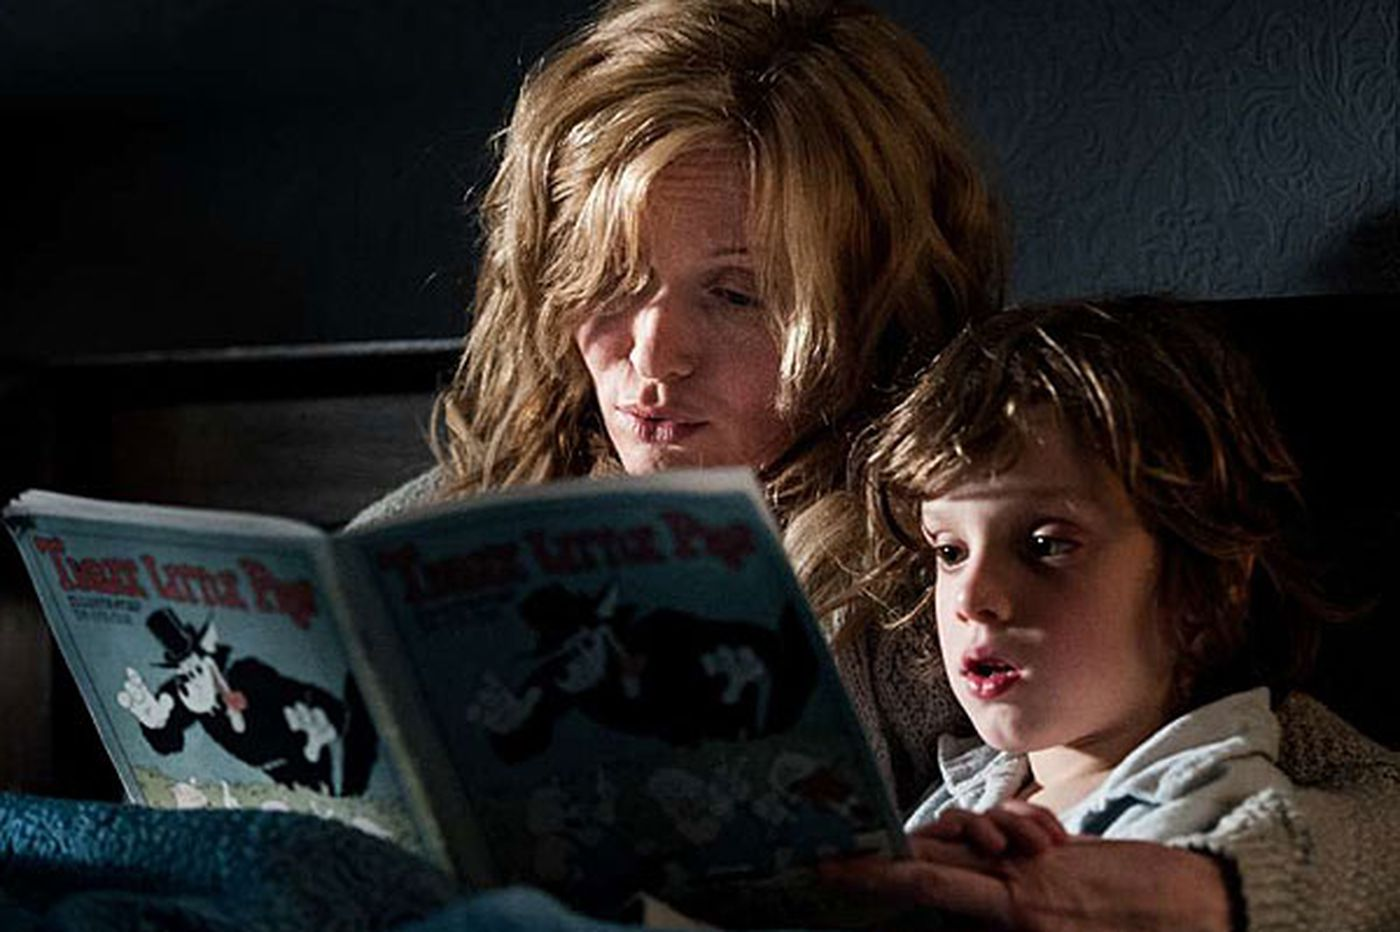 'The Babadook': Don't go down to the basement